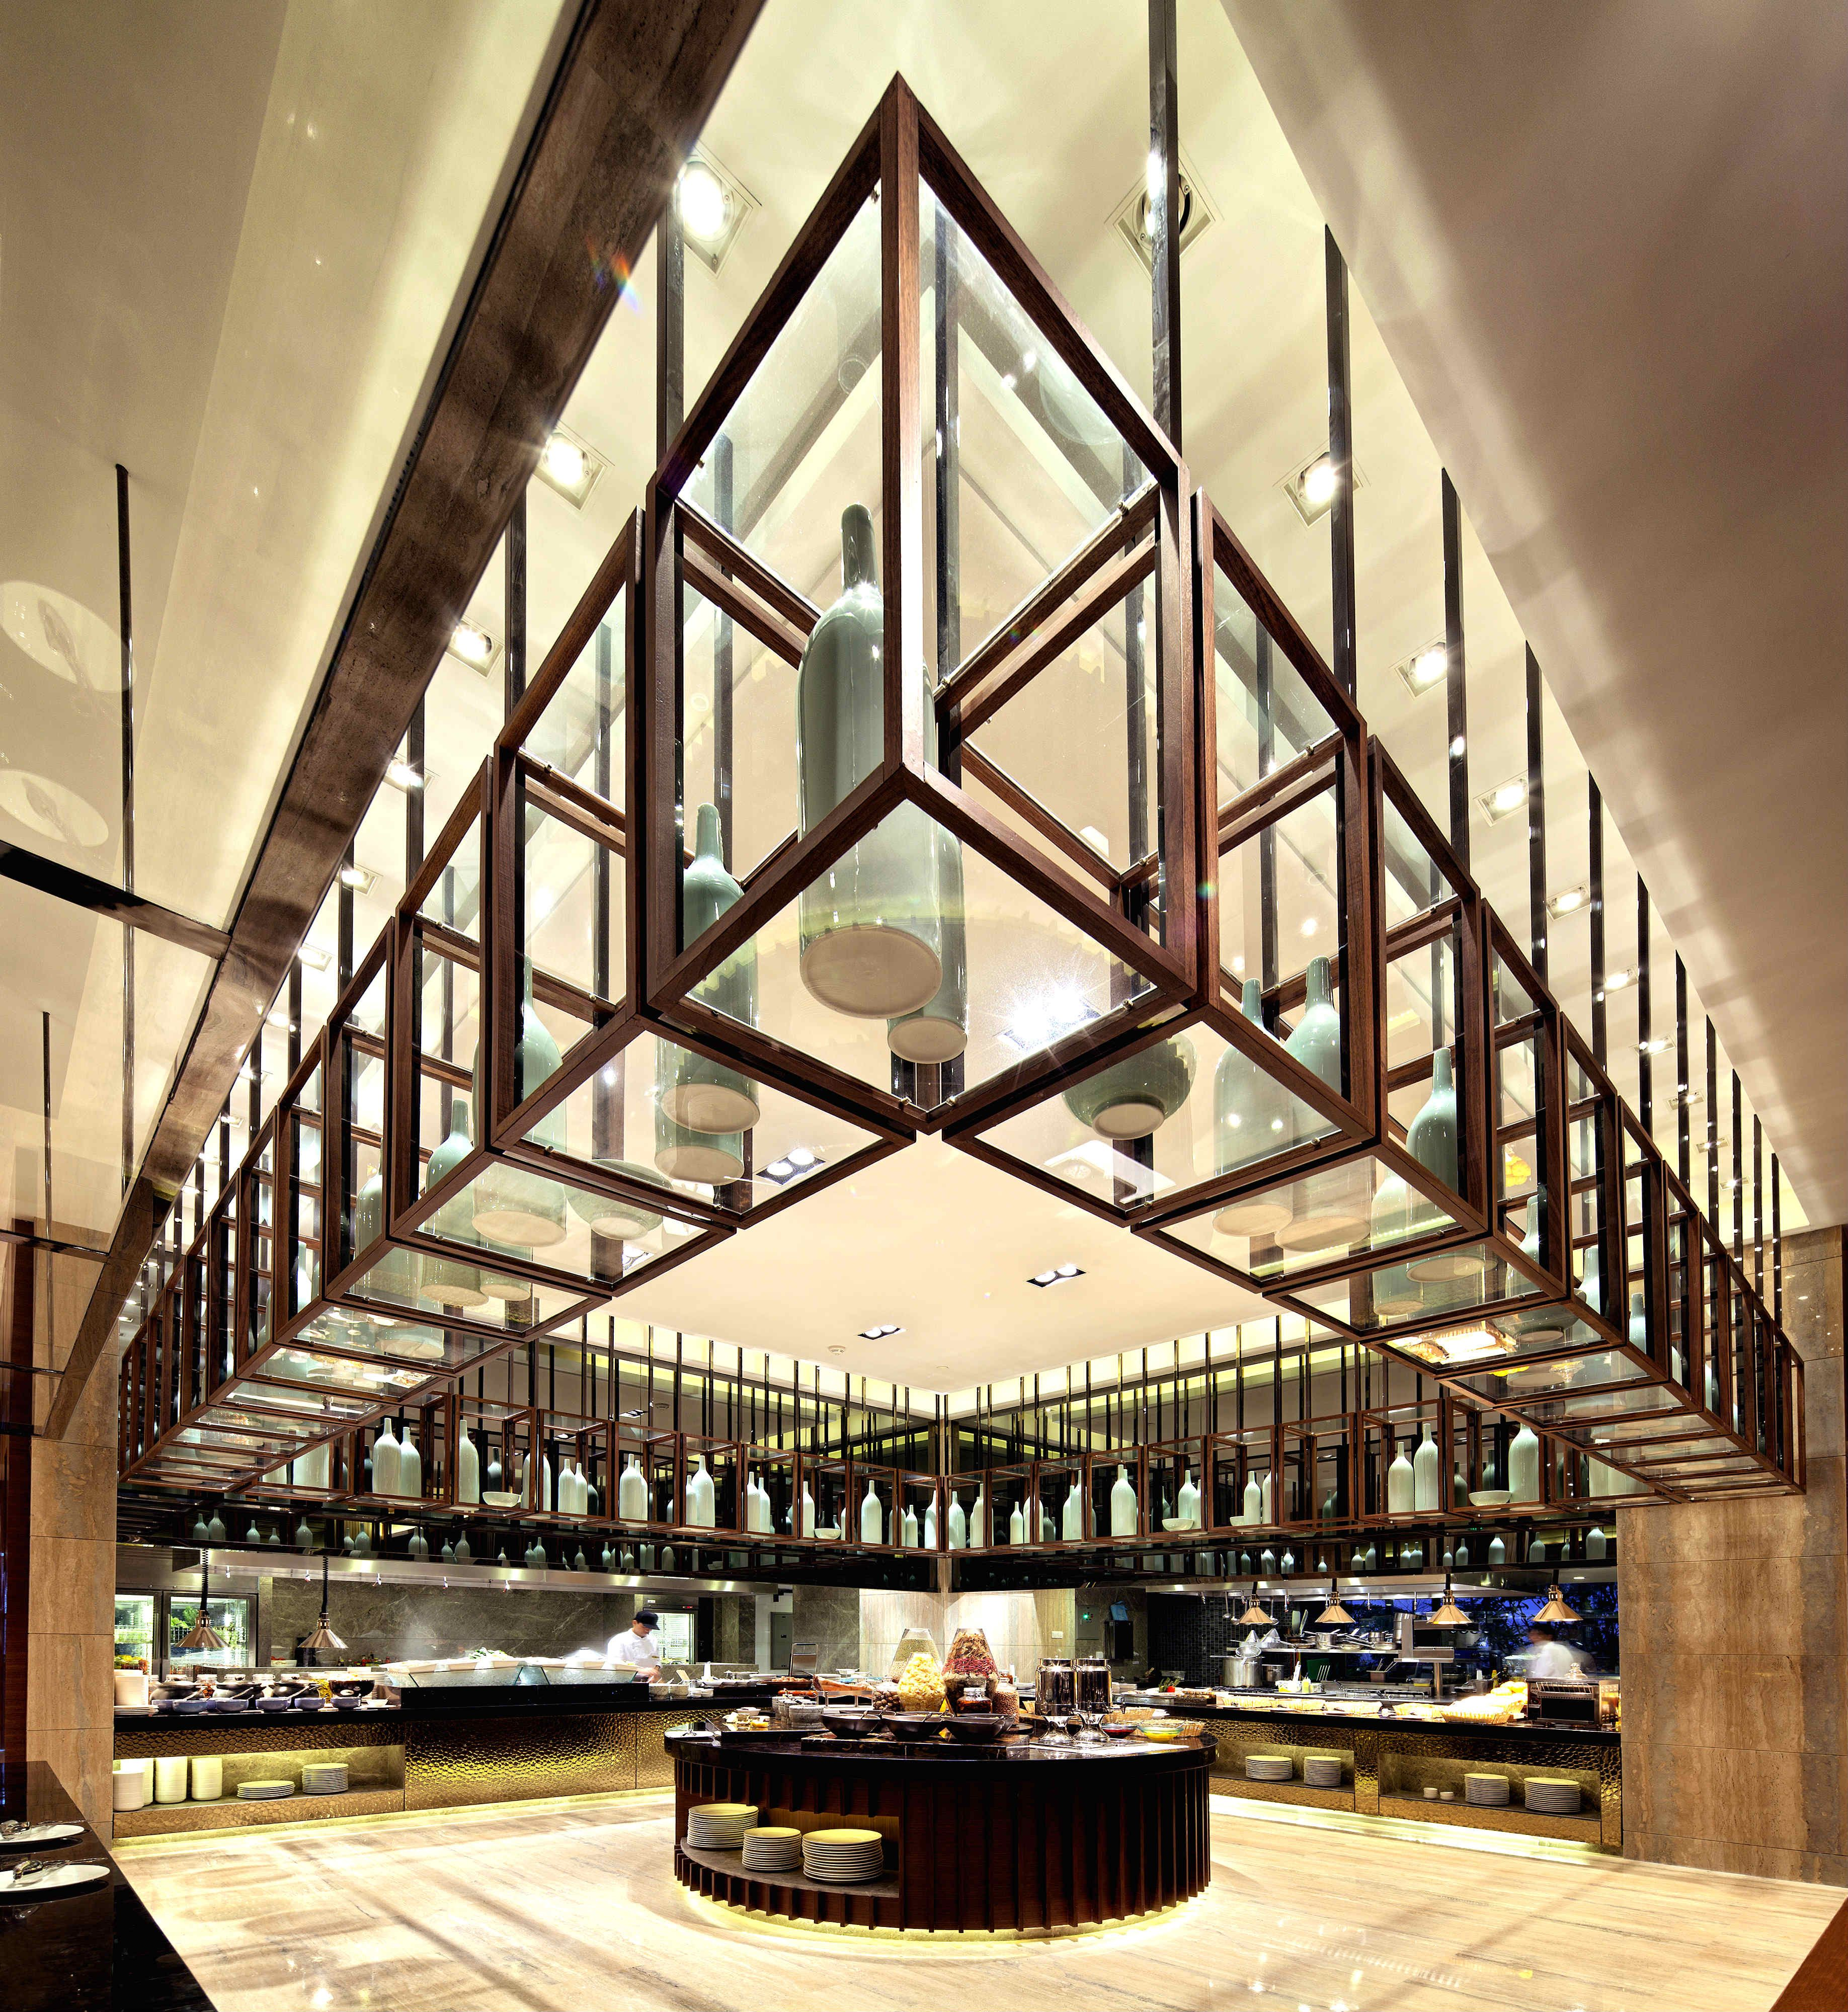 Buffet Cuisine Design The Gigantic Wooden Open Grid Above The Buffet Server